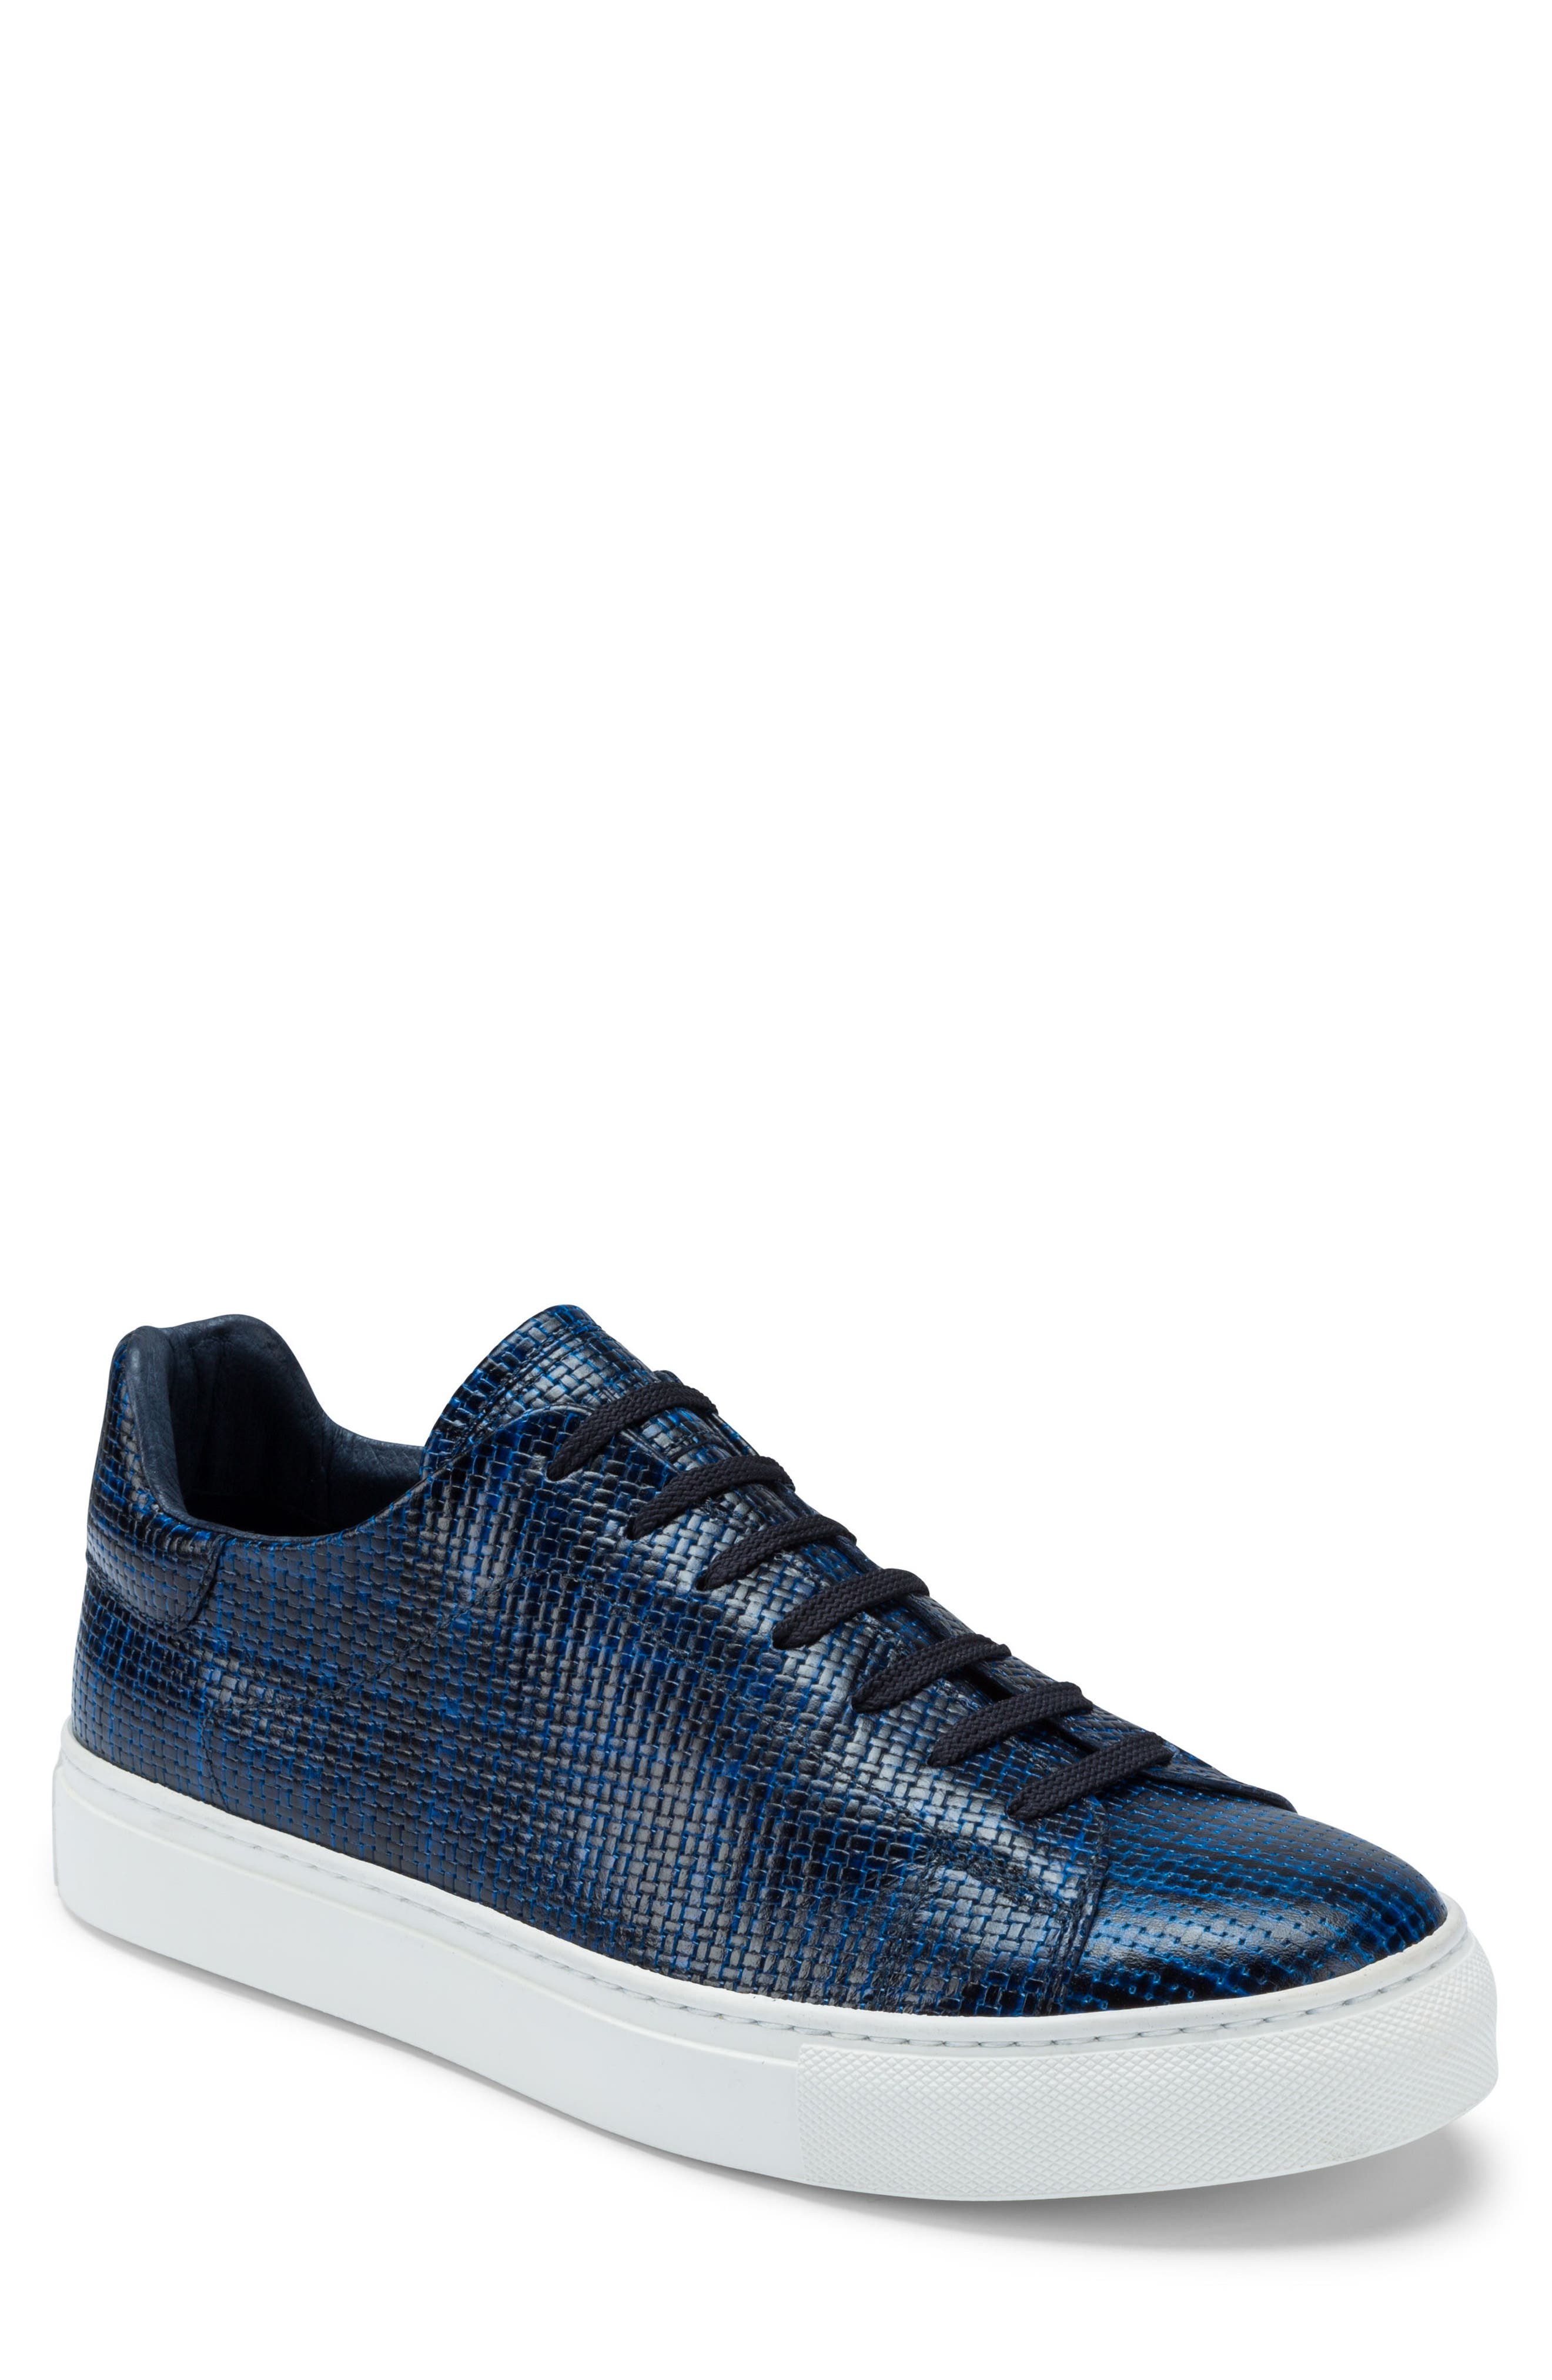 Wimbledon Sneaker,                             Main thumbnail 1, color,                             Navy Leather